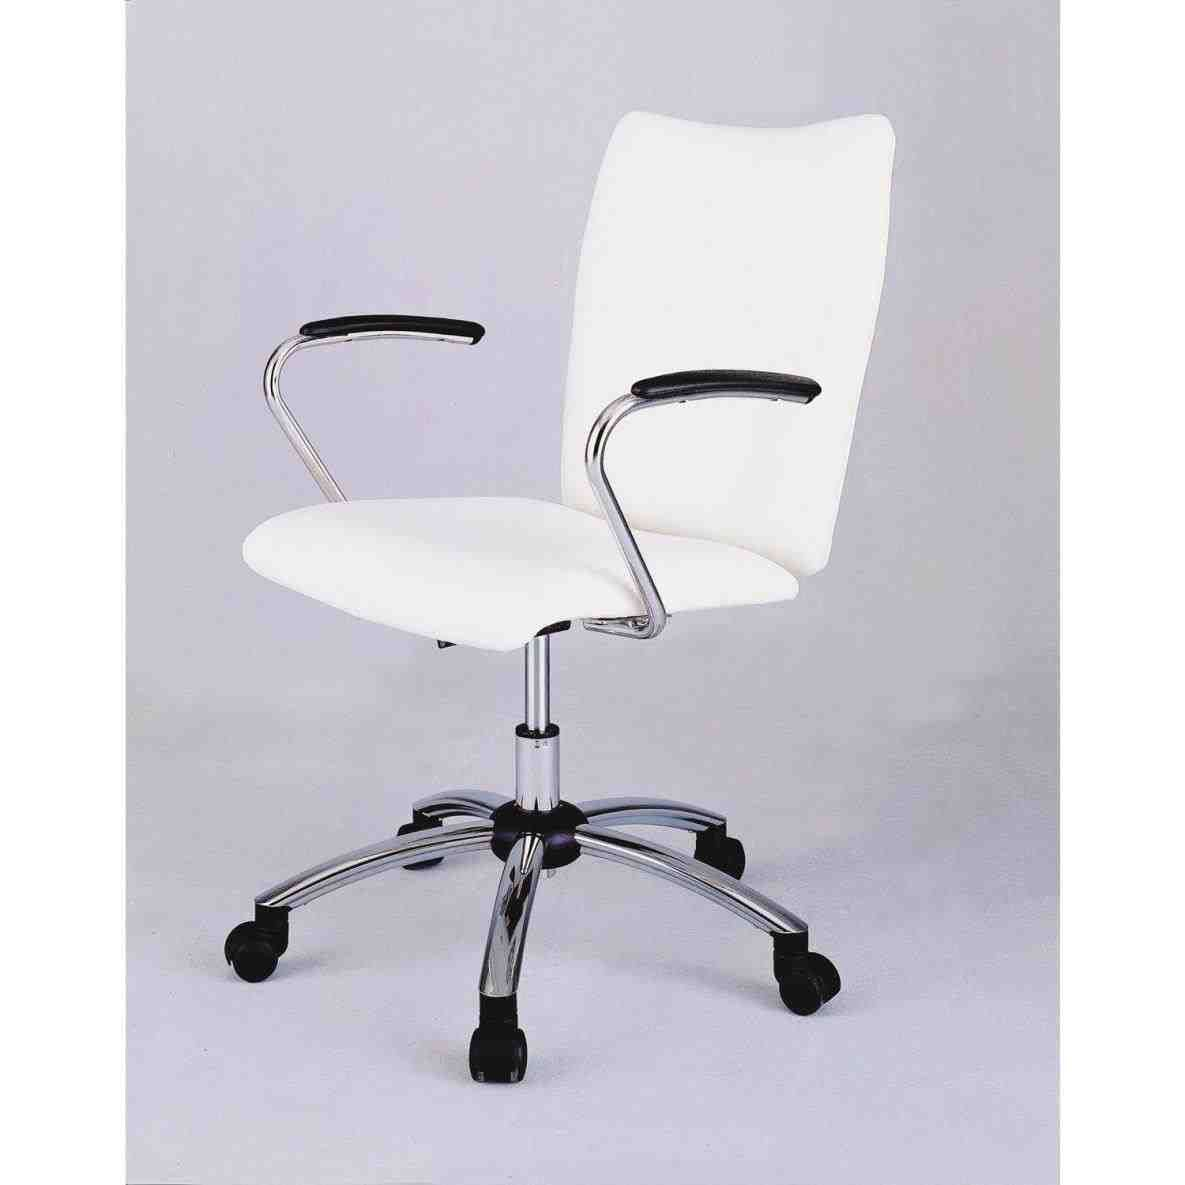 Cheap Office Chairs With Arms Full Size Of Office Chairs Swivel Office Chair Office Chairs On Sale White Desk Chair White Rolling Desk Chair Girls Desk Chair